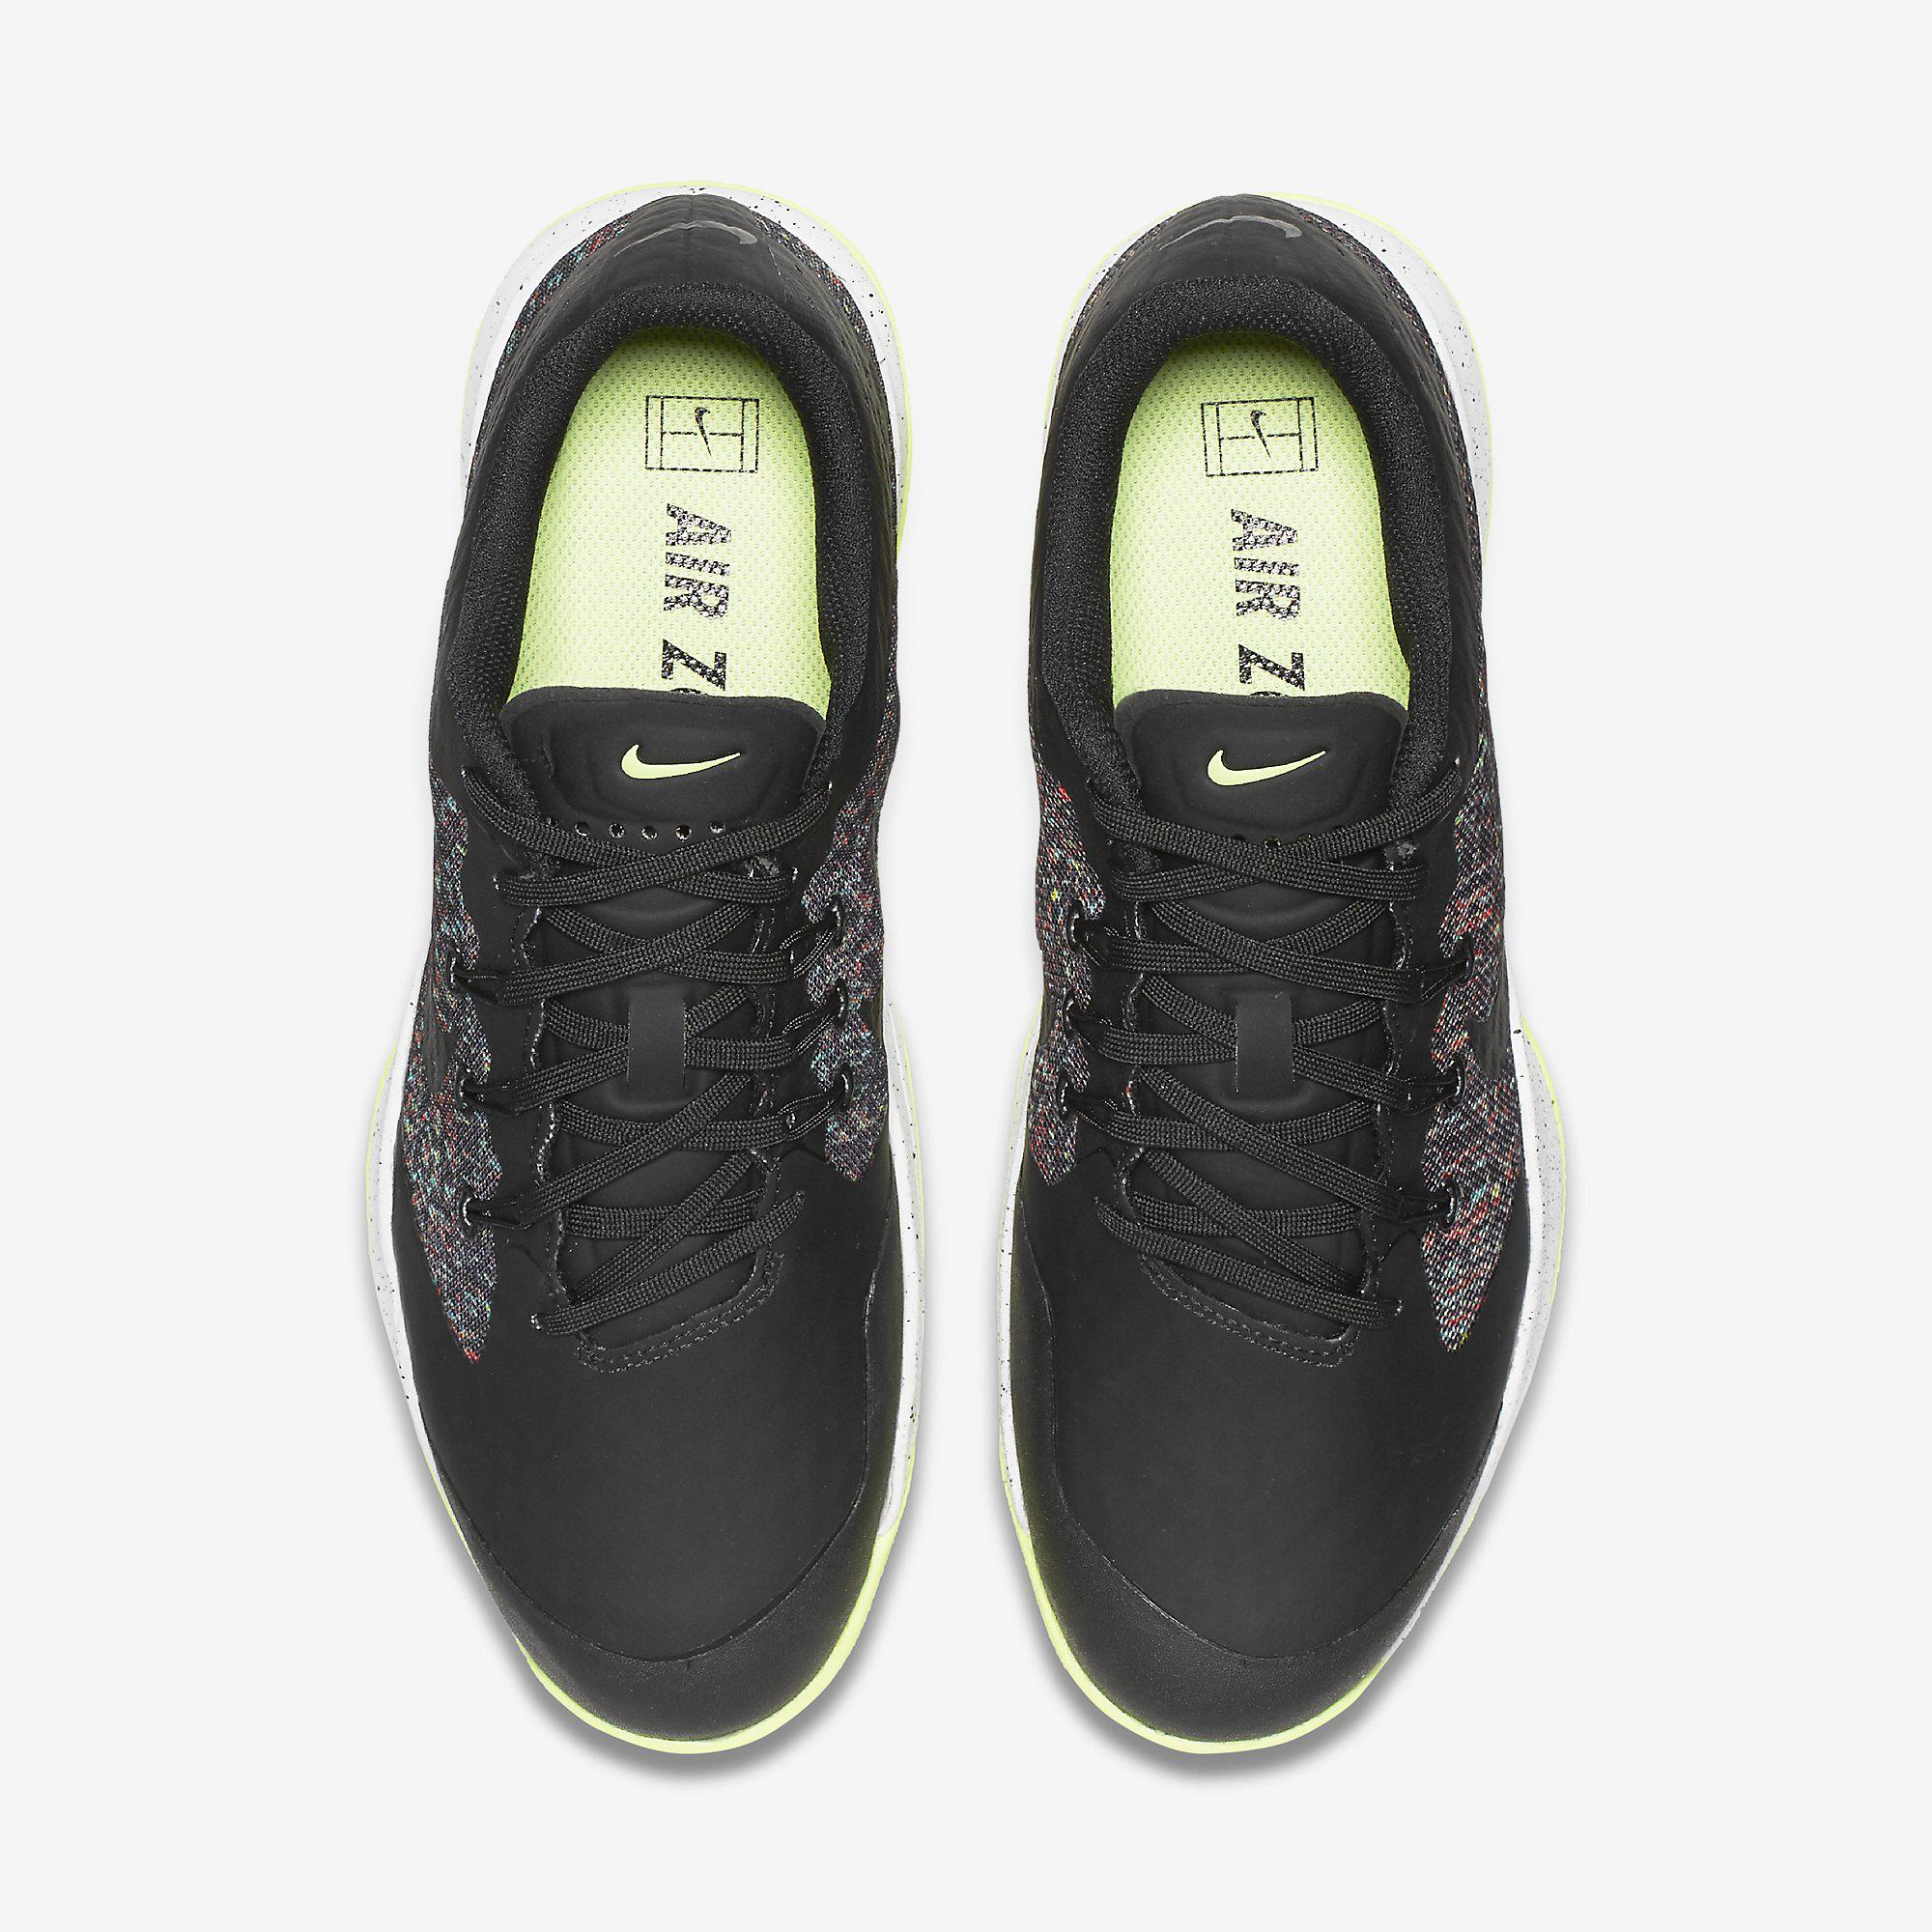 Limited Edition Mens Tennis Shoes